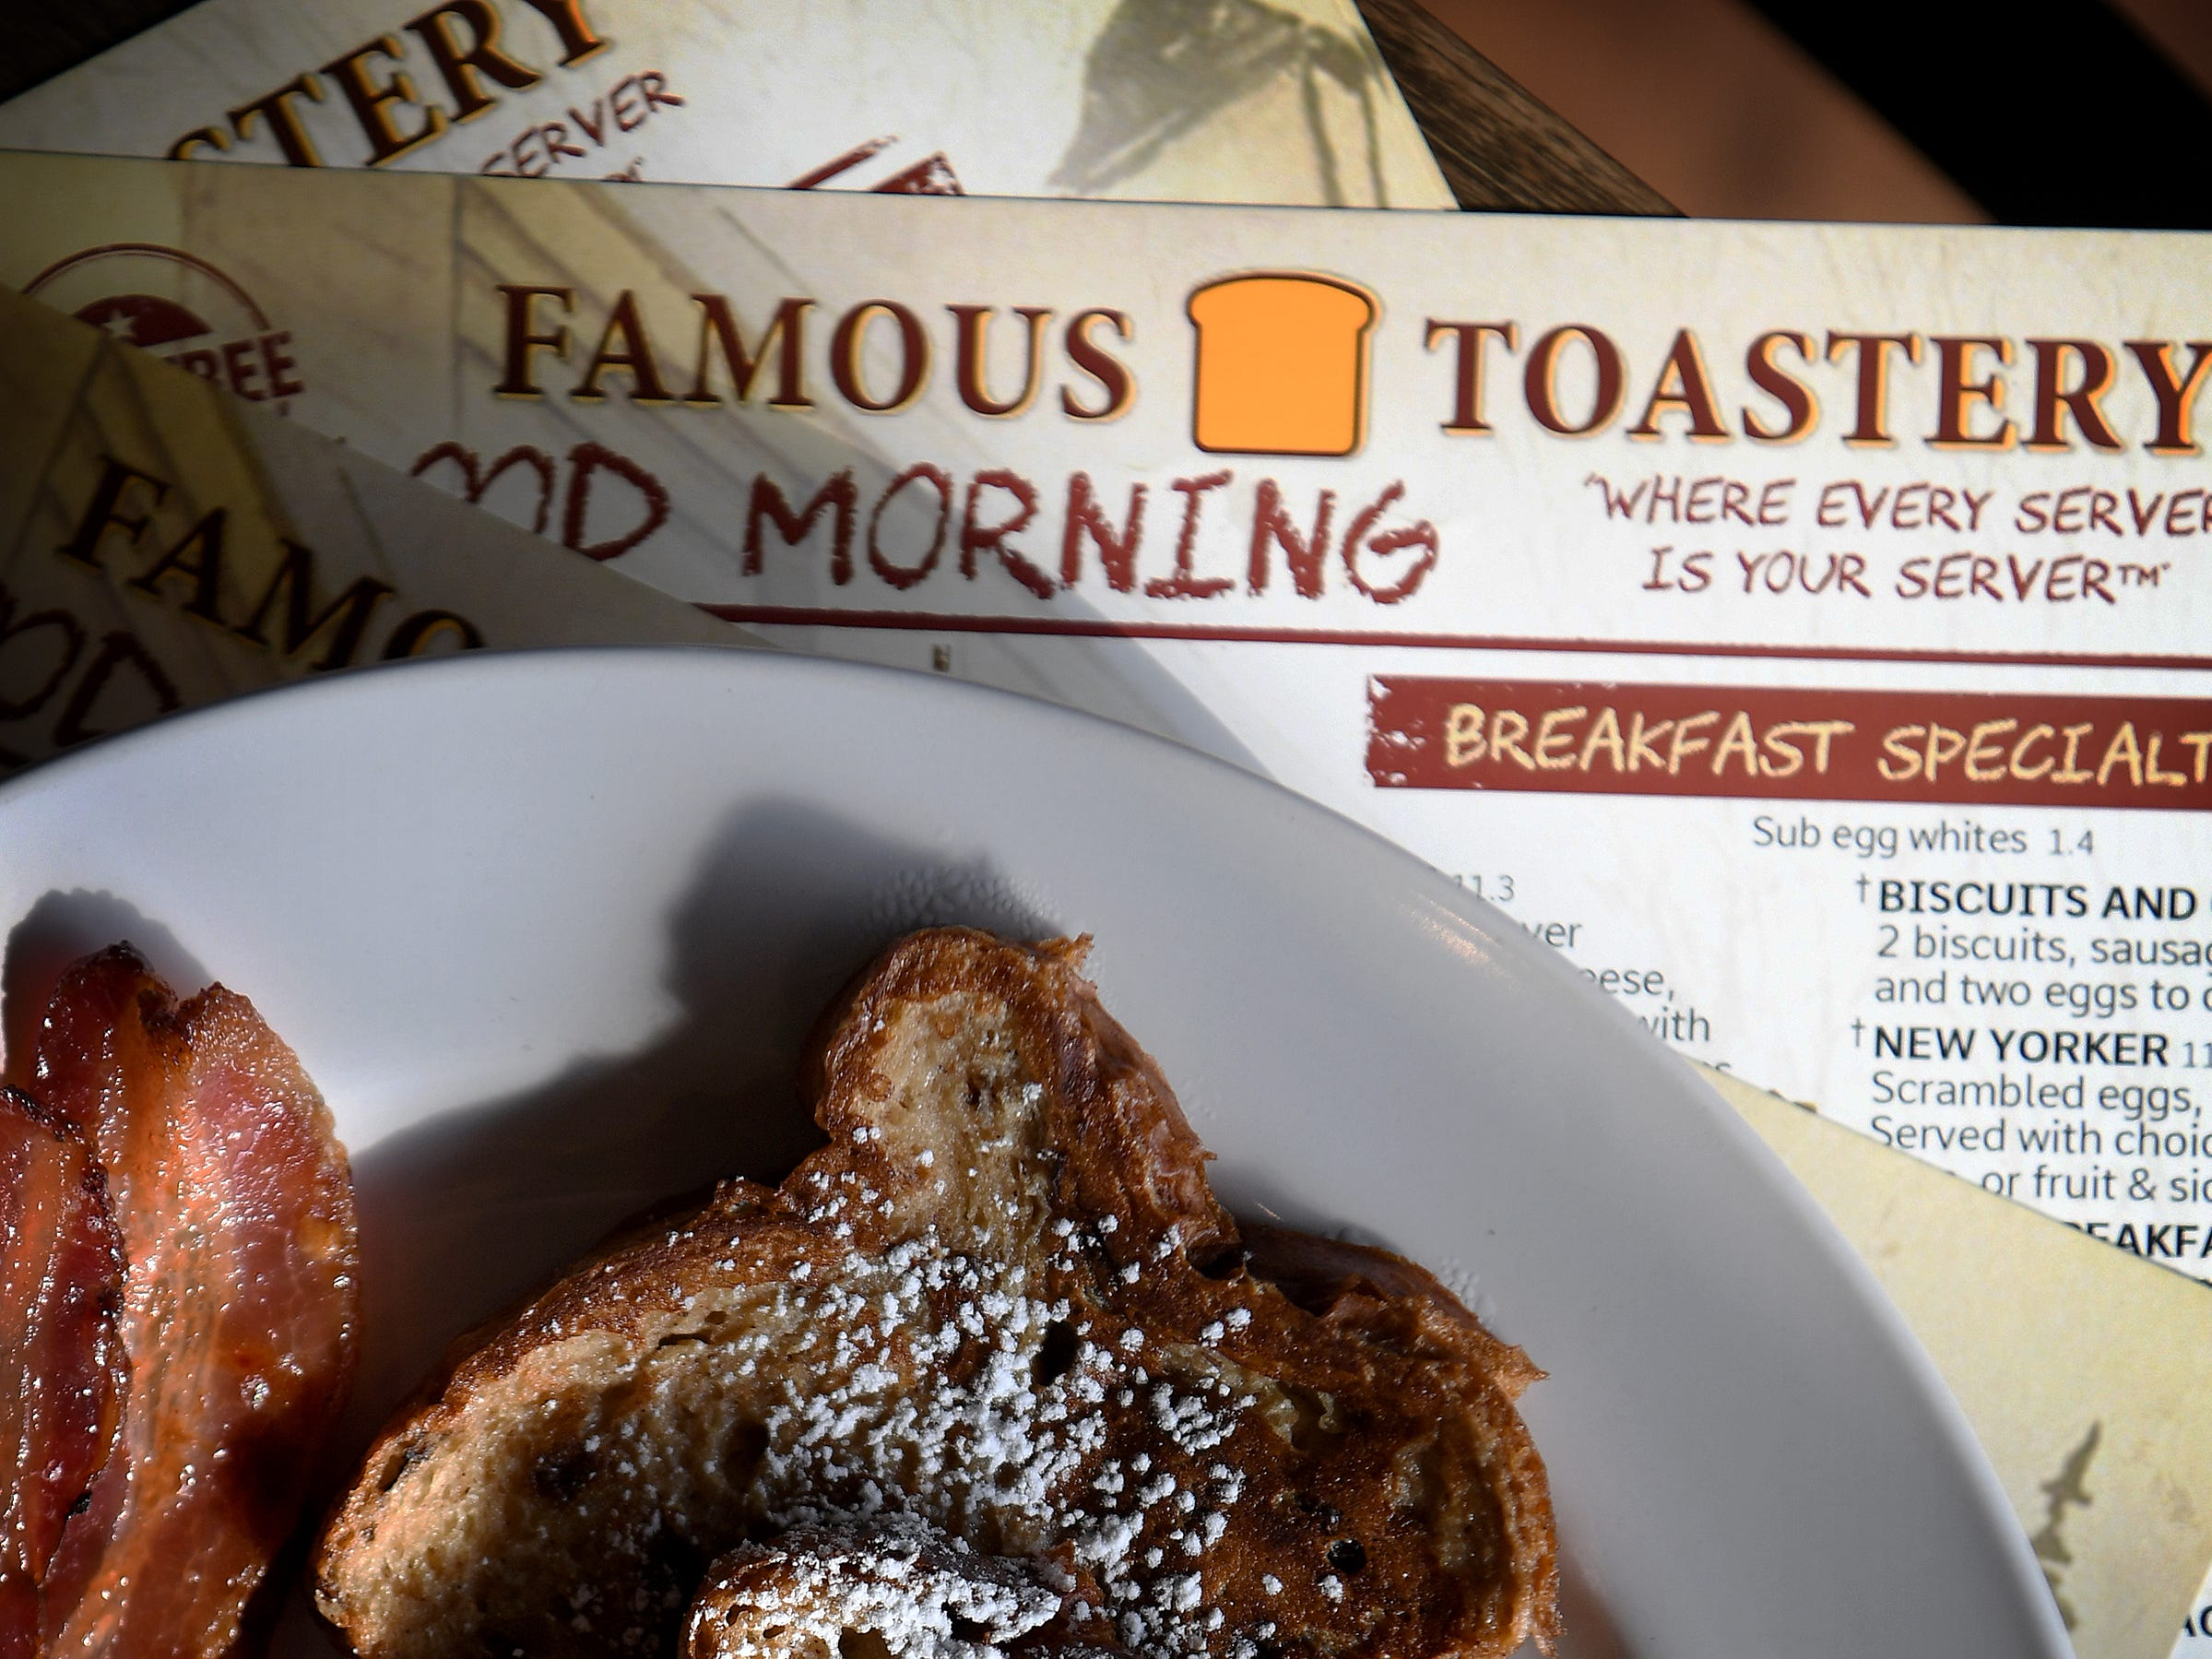 The cinnamon raisin French toast at Famous Toastery, here served with bacon, is a breakfast favorite.